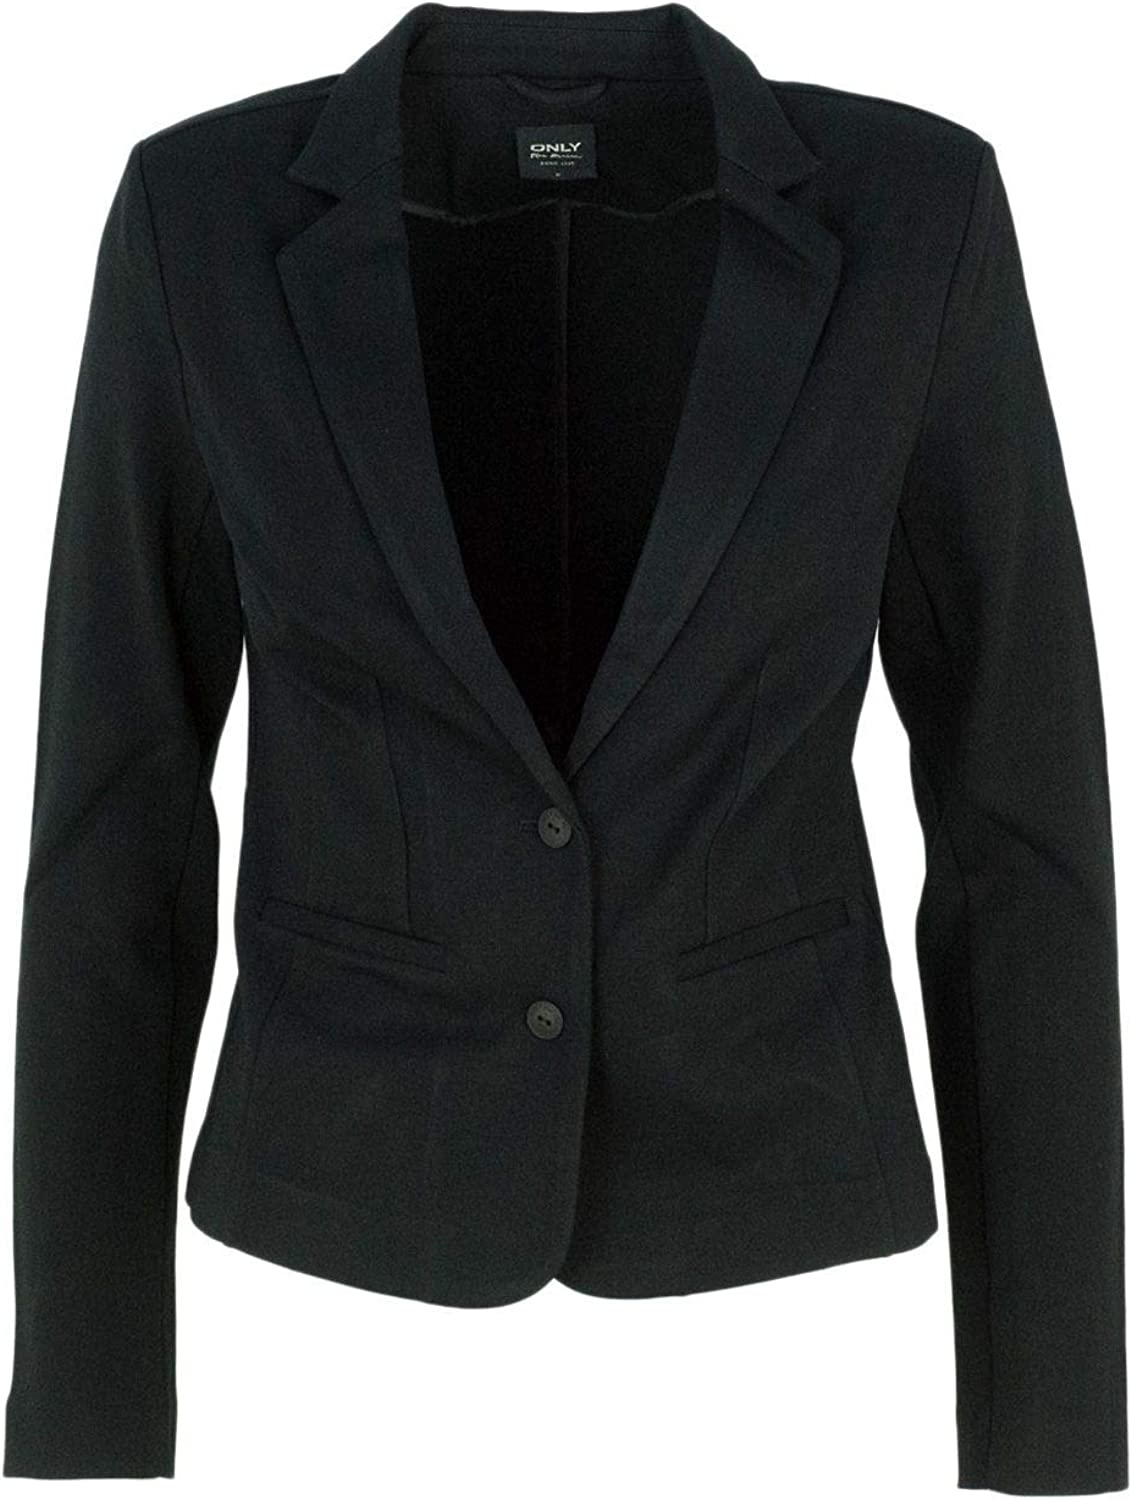 Only Women's 15153144BLACK Black Viscose Blazer